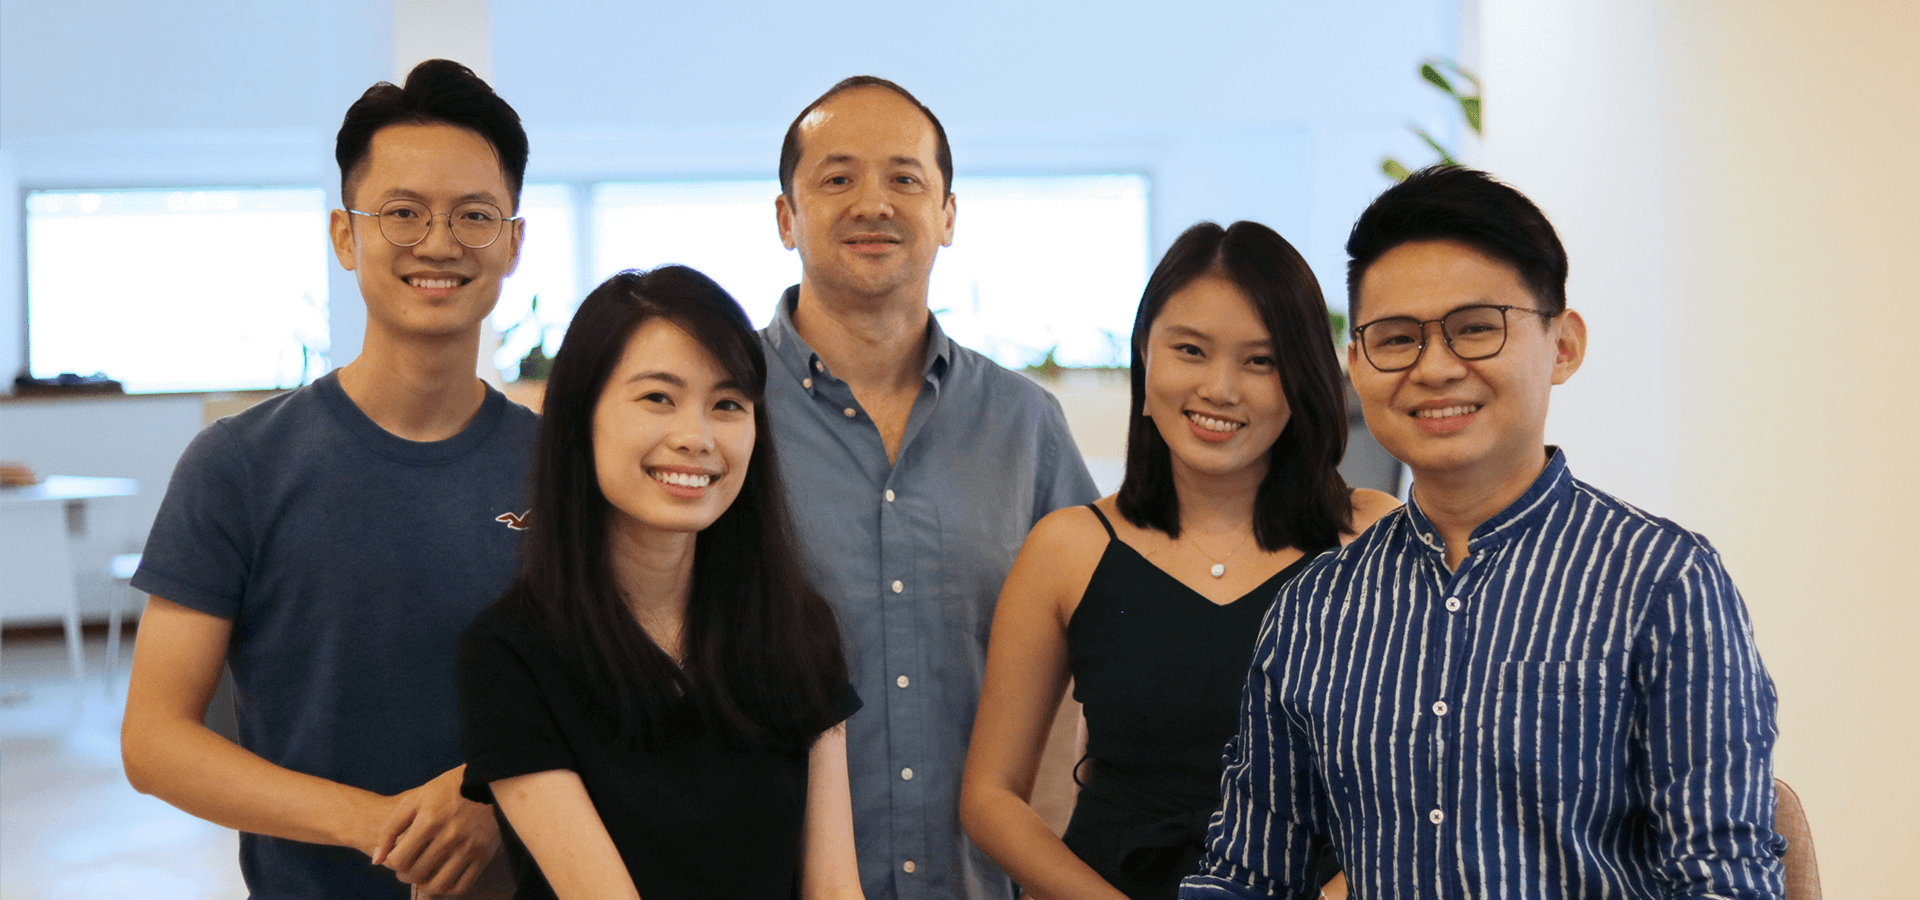 The people behind Lab360: Arvin, Elizabeth, James, Miranda and Agung